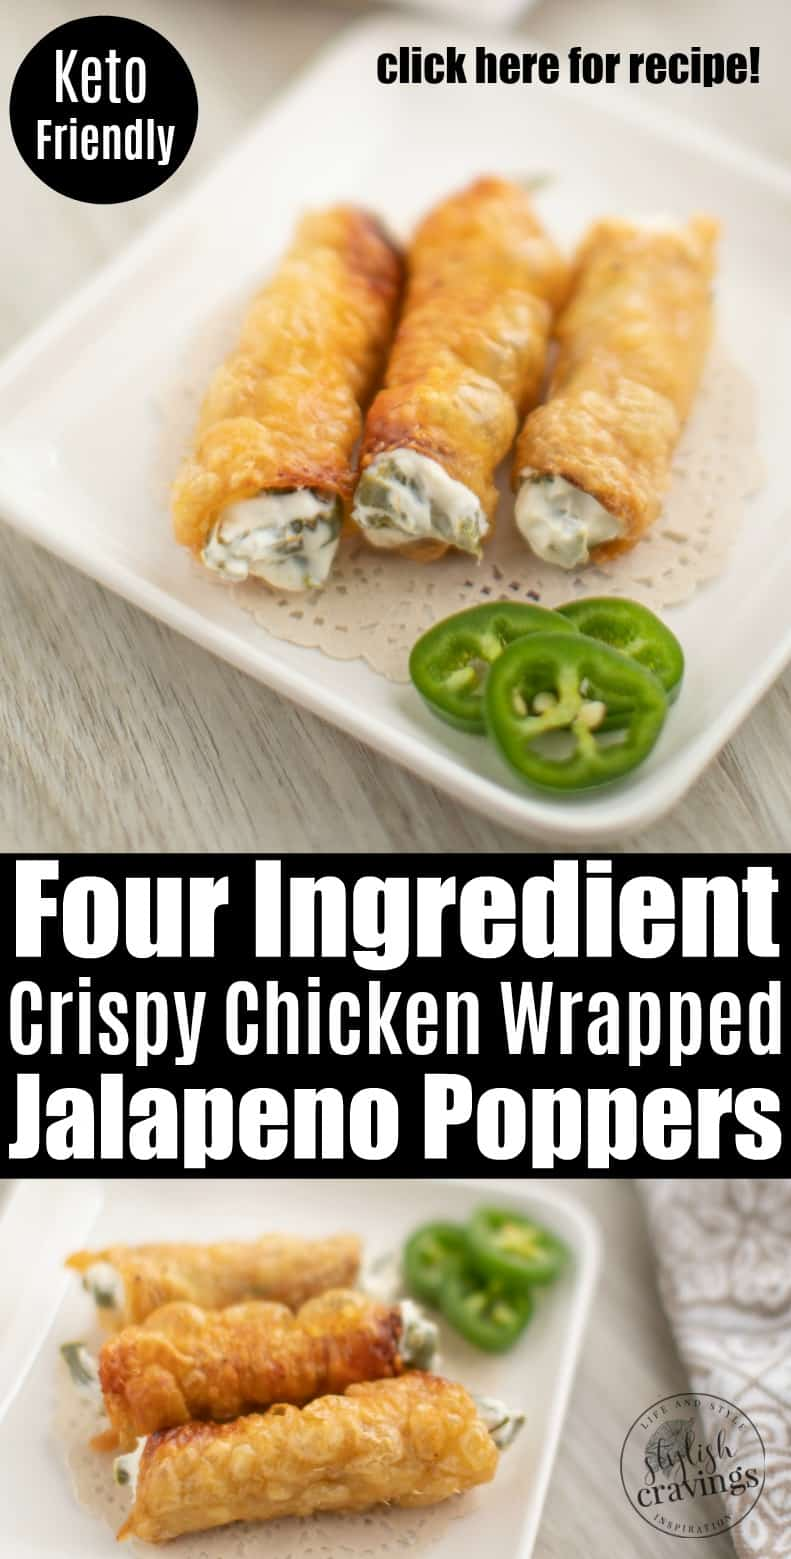 Crispy Chicken Wrapped Jalapeno Poppers